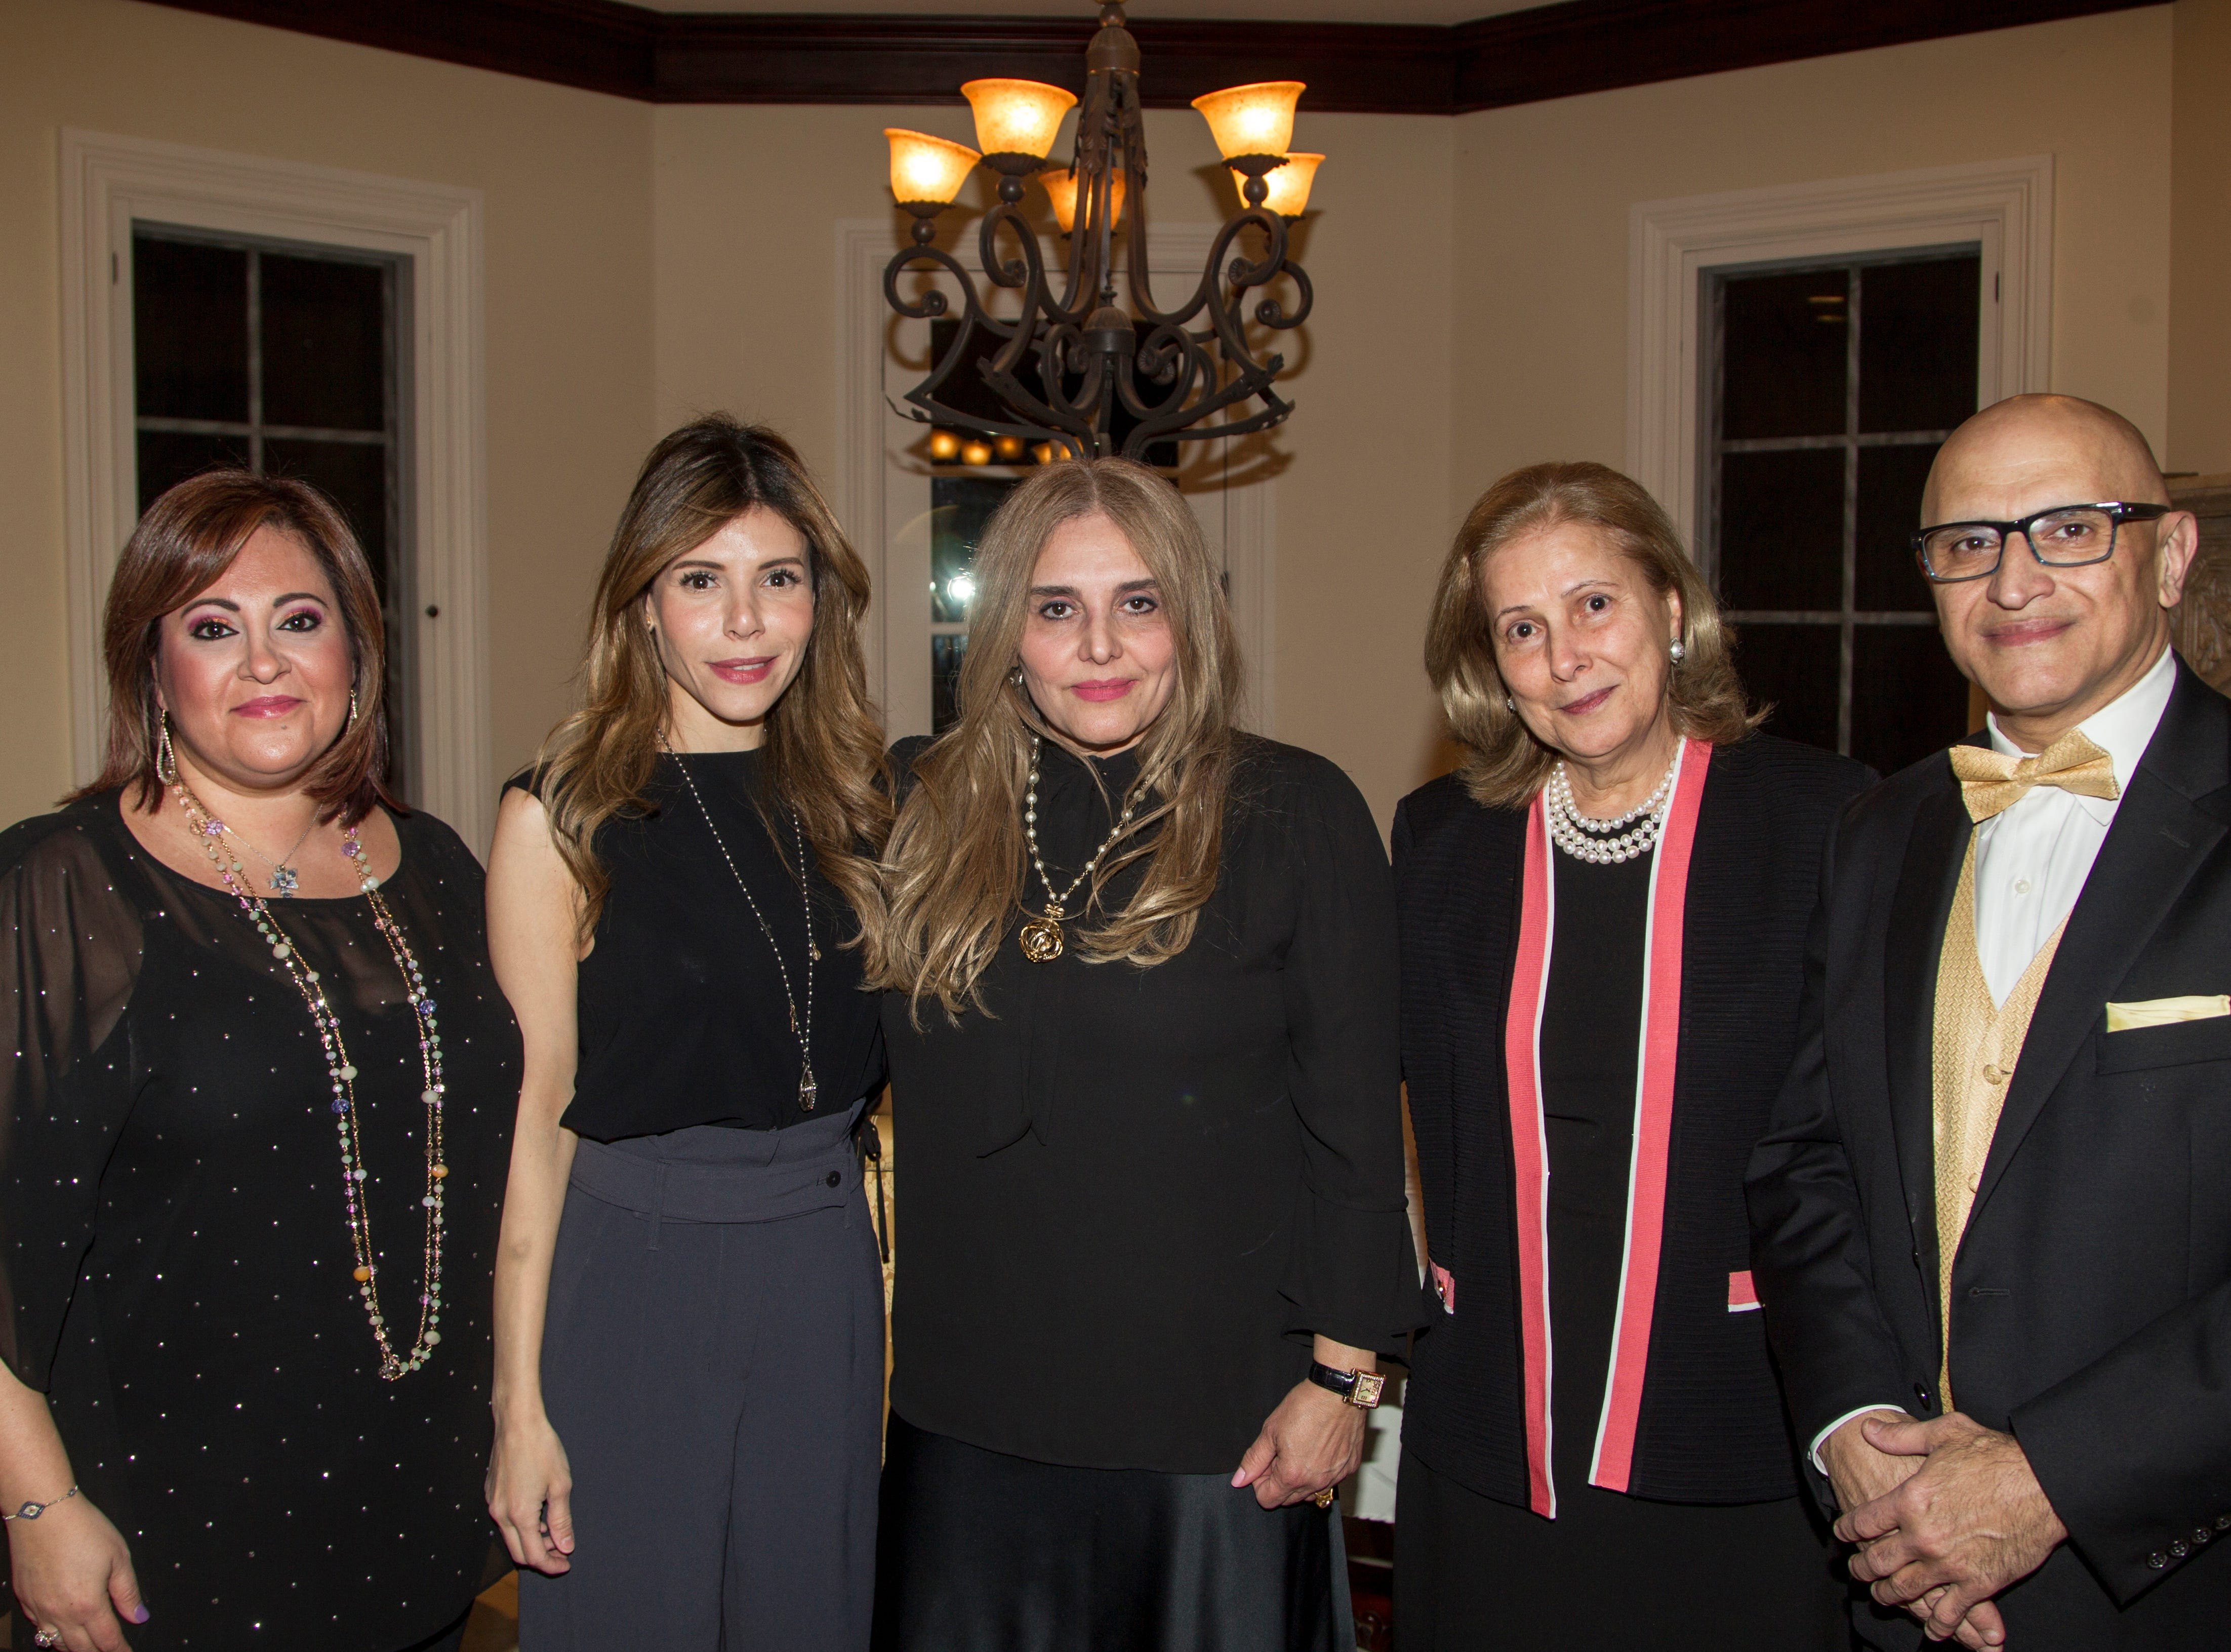 Mary Carroll, Sandy Kurtz, Brooke Rezvani, Nora Kurts, Fred Rezvani. Saddle River Arts Council presents An Evening of Giving Back featureing Eric Genuis in Saddle River. 03/30/2019